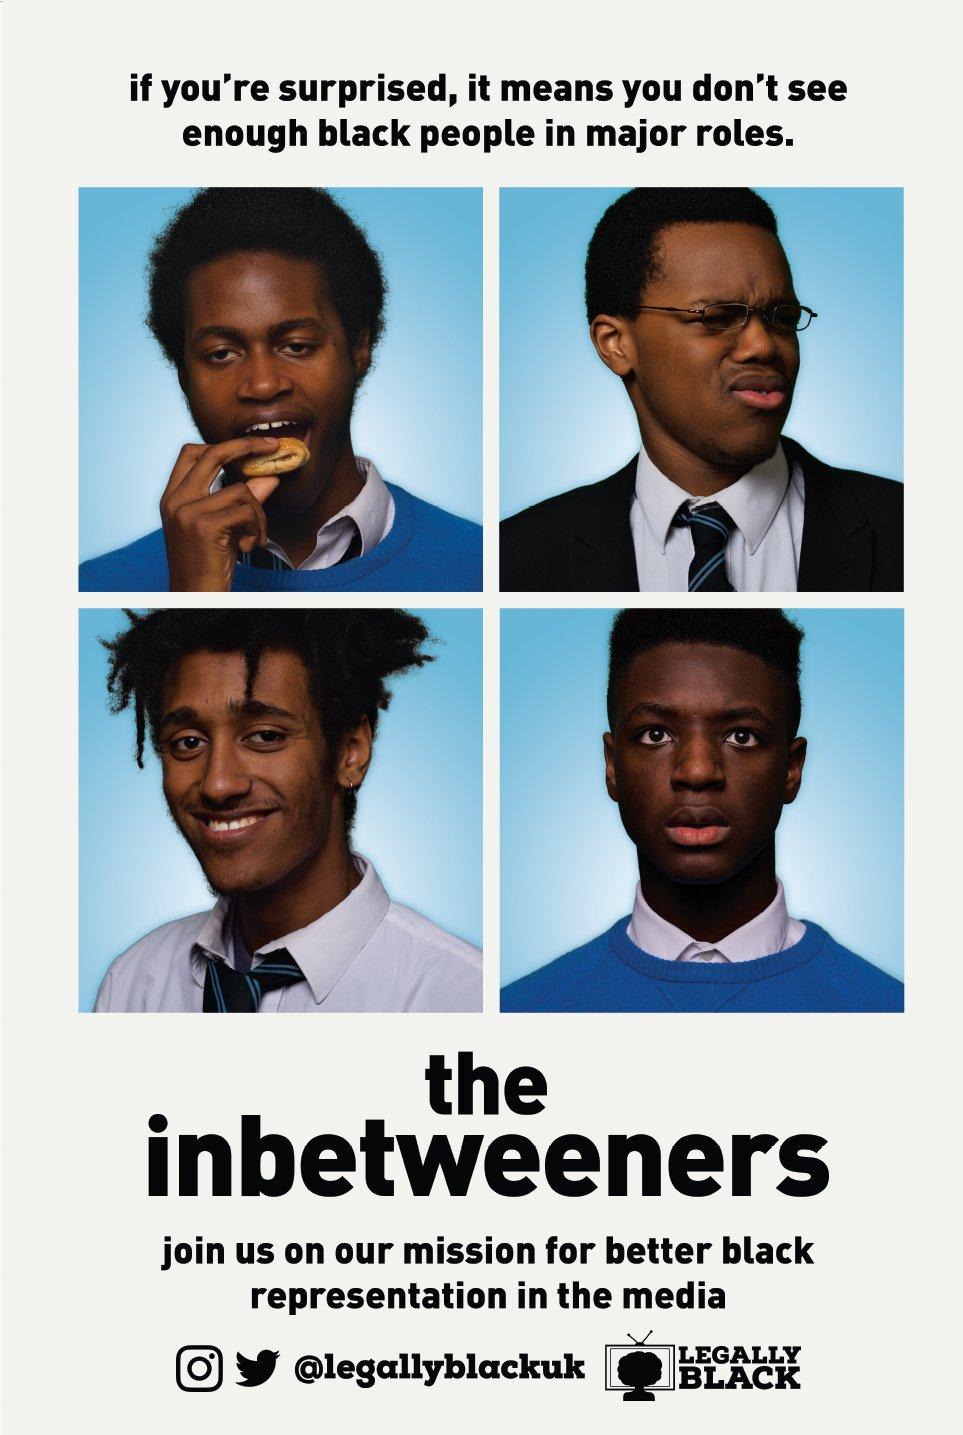 inbetweeners edited.jpg